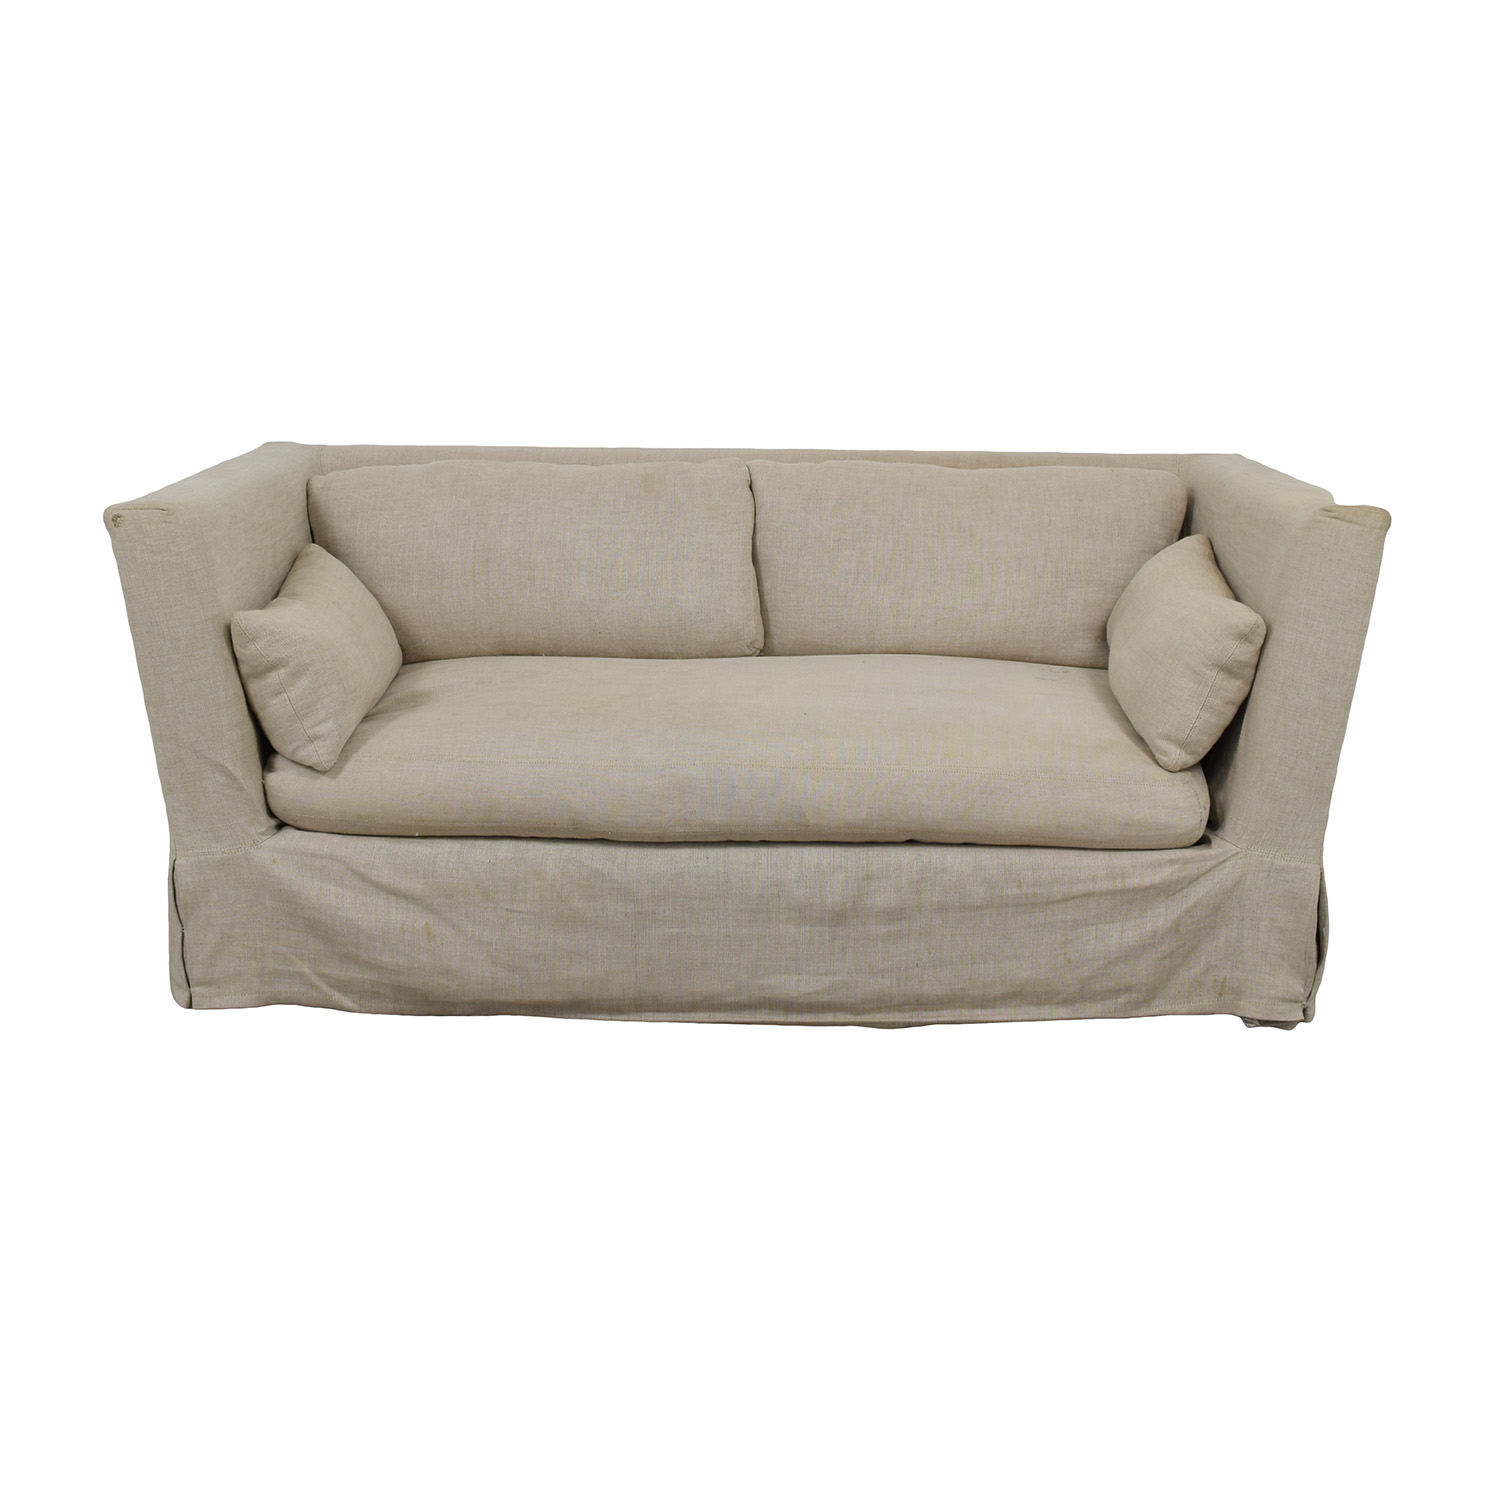 Restoration Hardware Grey Single Cushion Slipcover Sofa sale